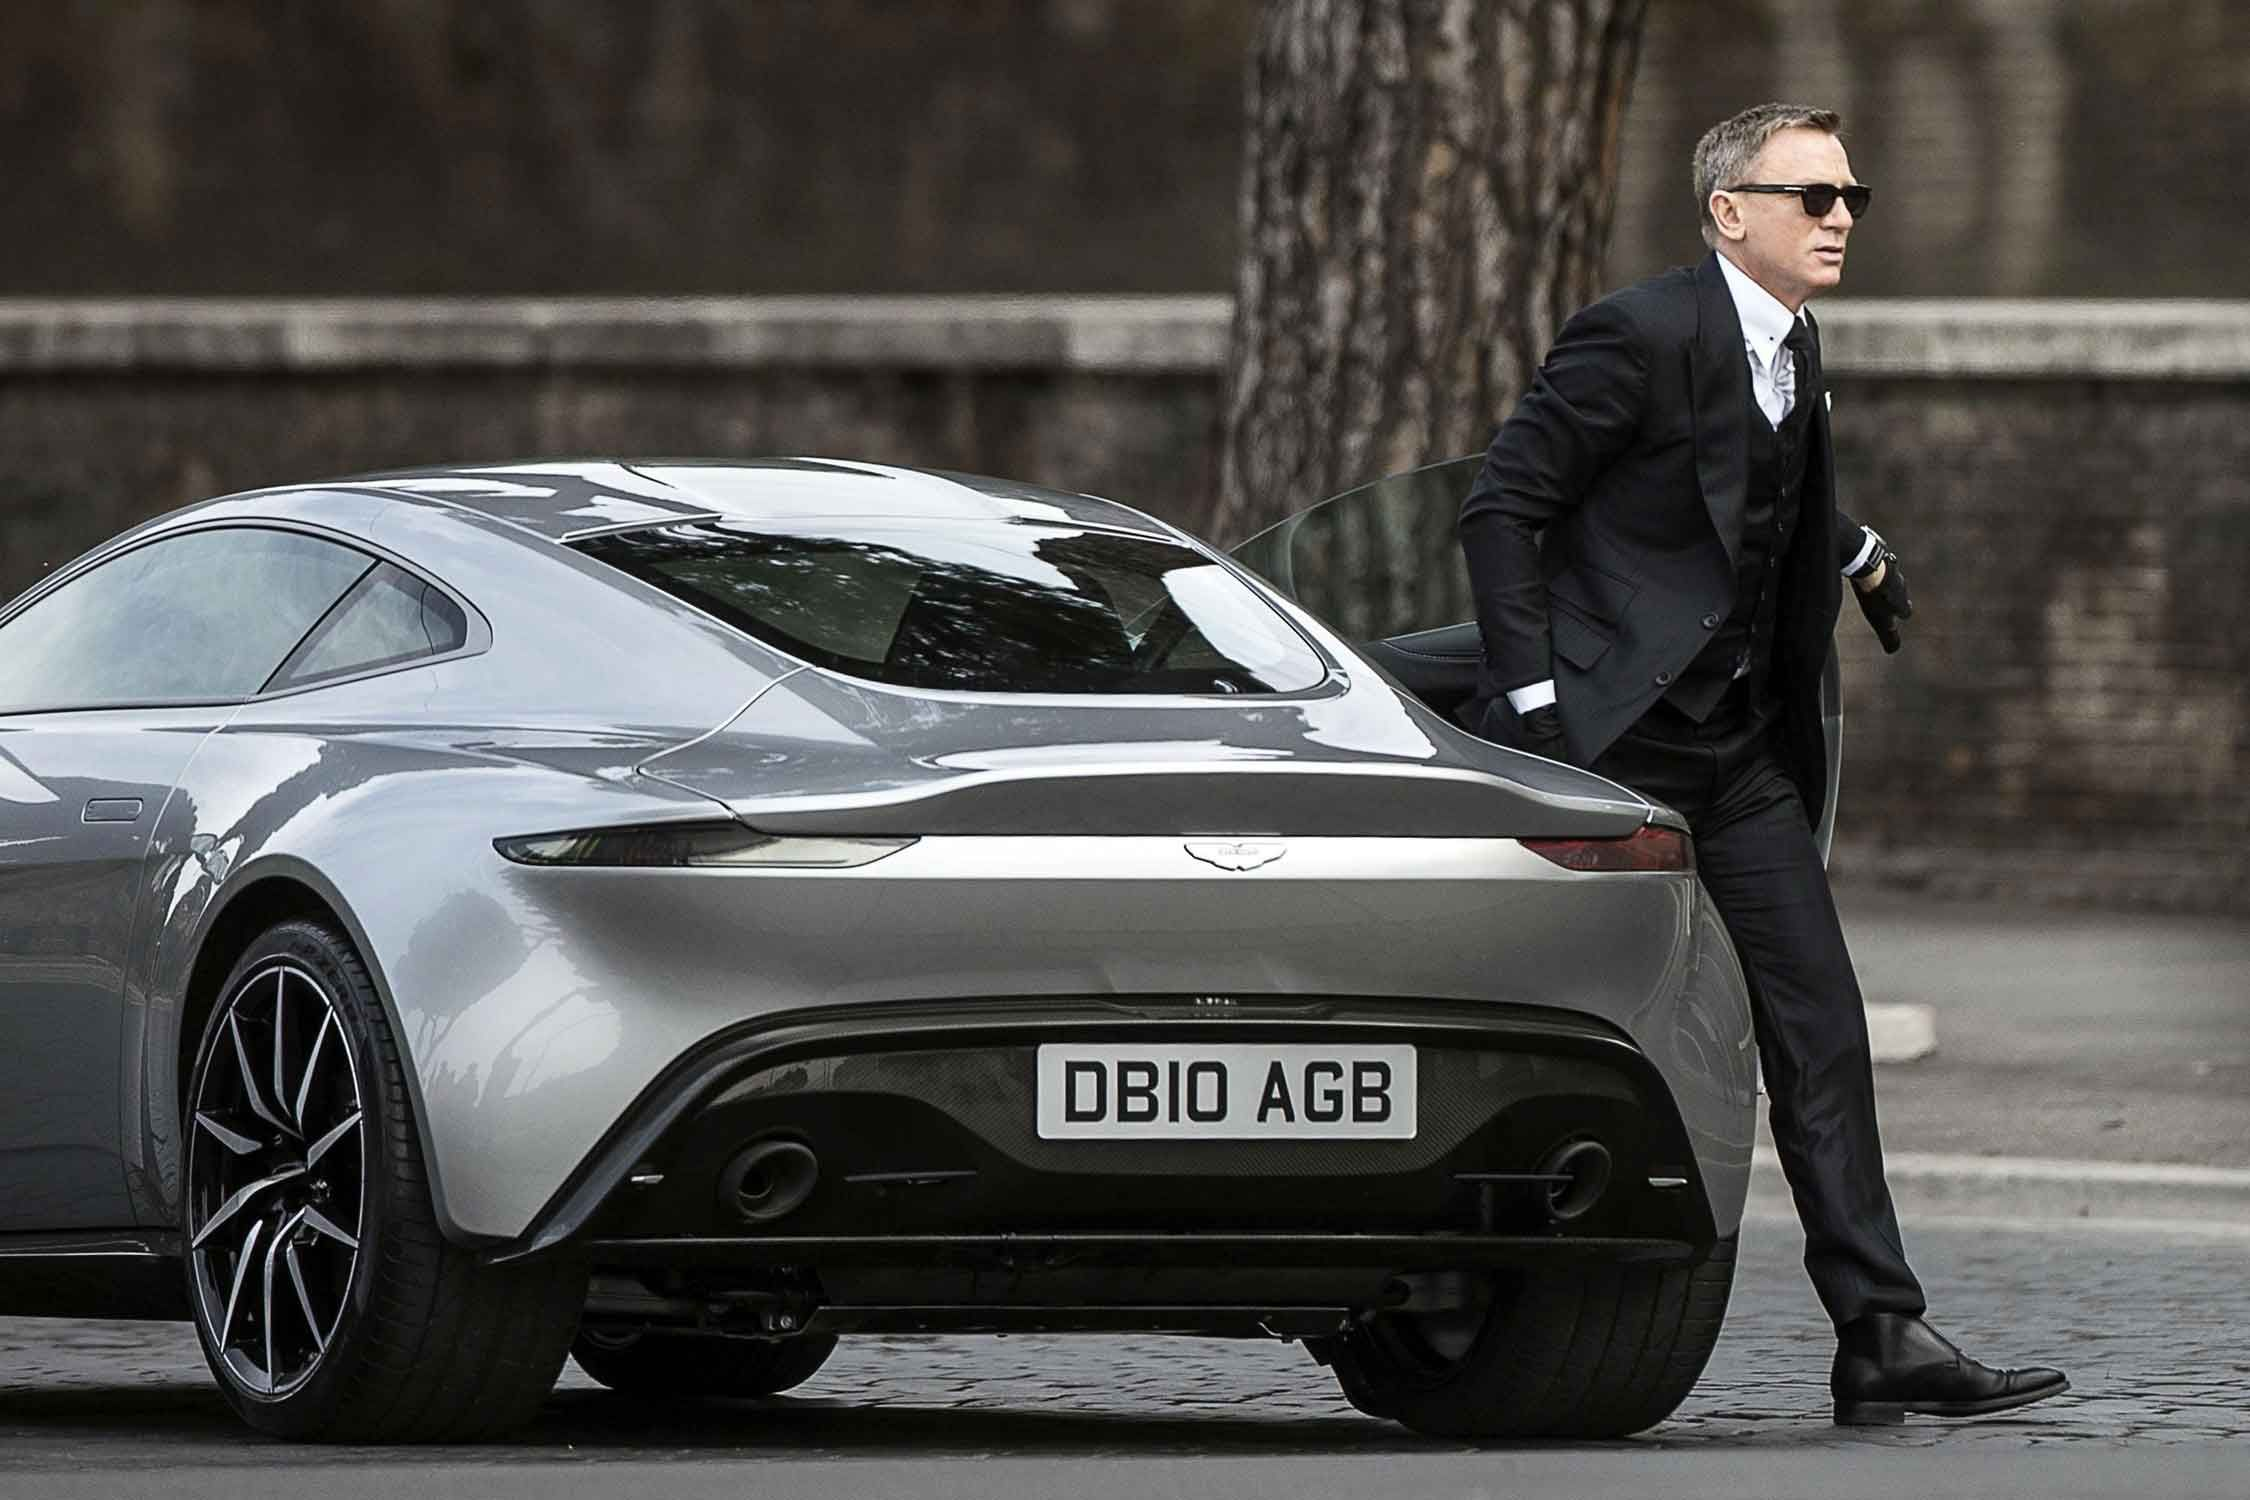 spectre clothing guide of james bond suits & other accessories